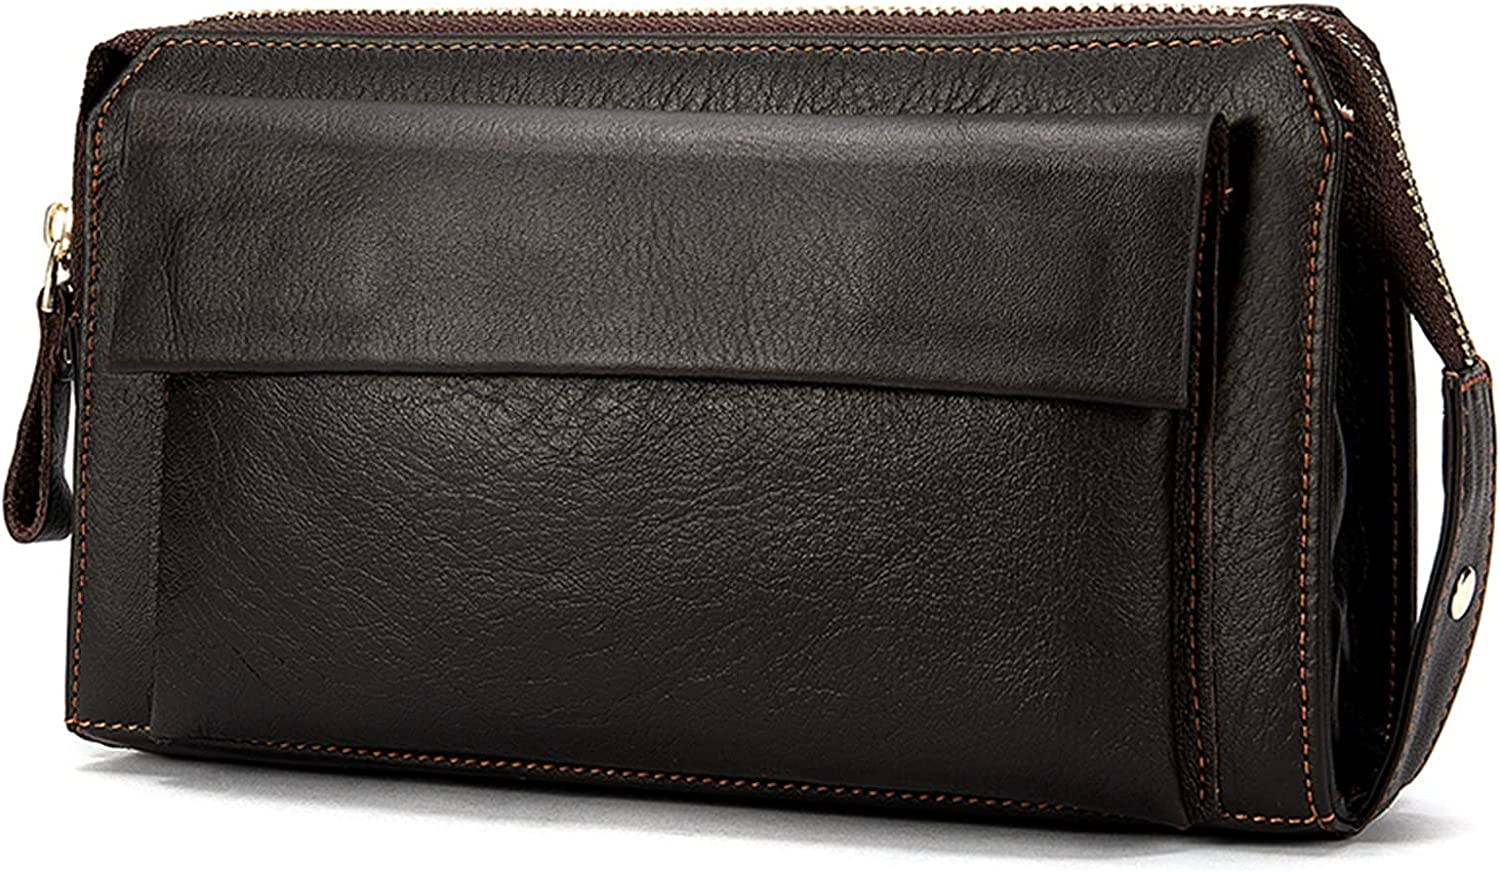 Lingwu Sales results Atlanta Mall No. 1 Large Functional Mens Genuine Zipper Wallet Leather Credi